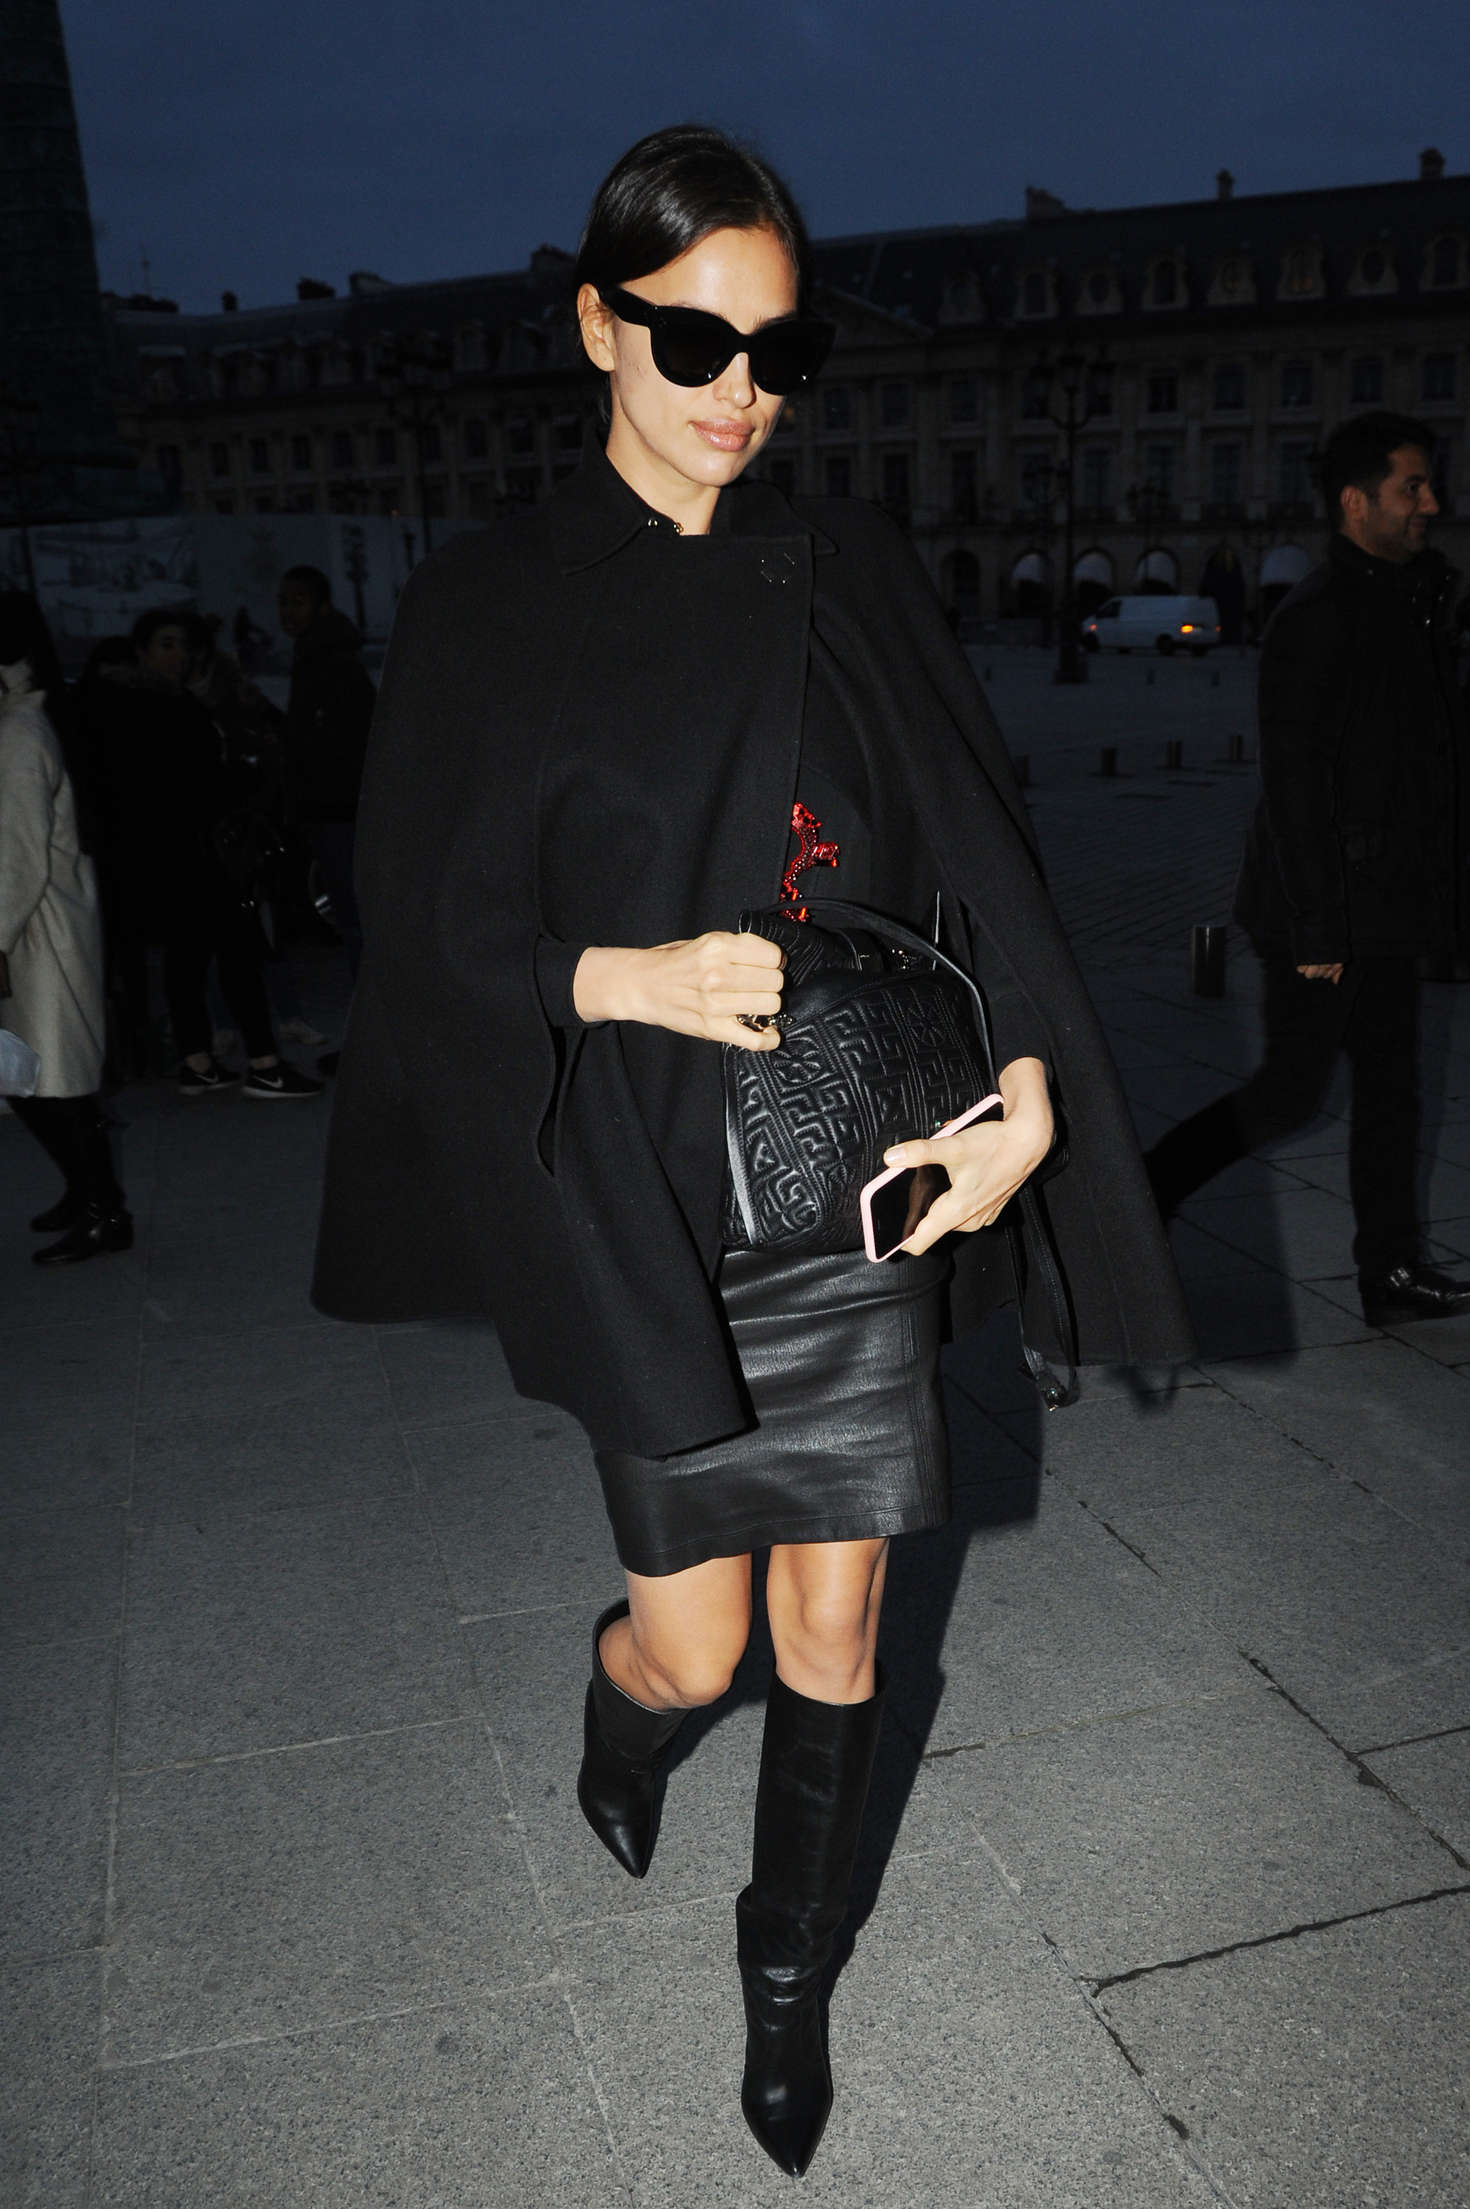 Irina Shayk out and about in Paris